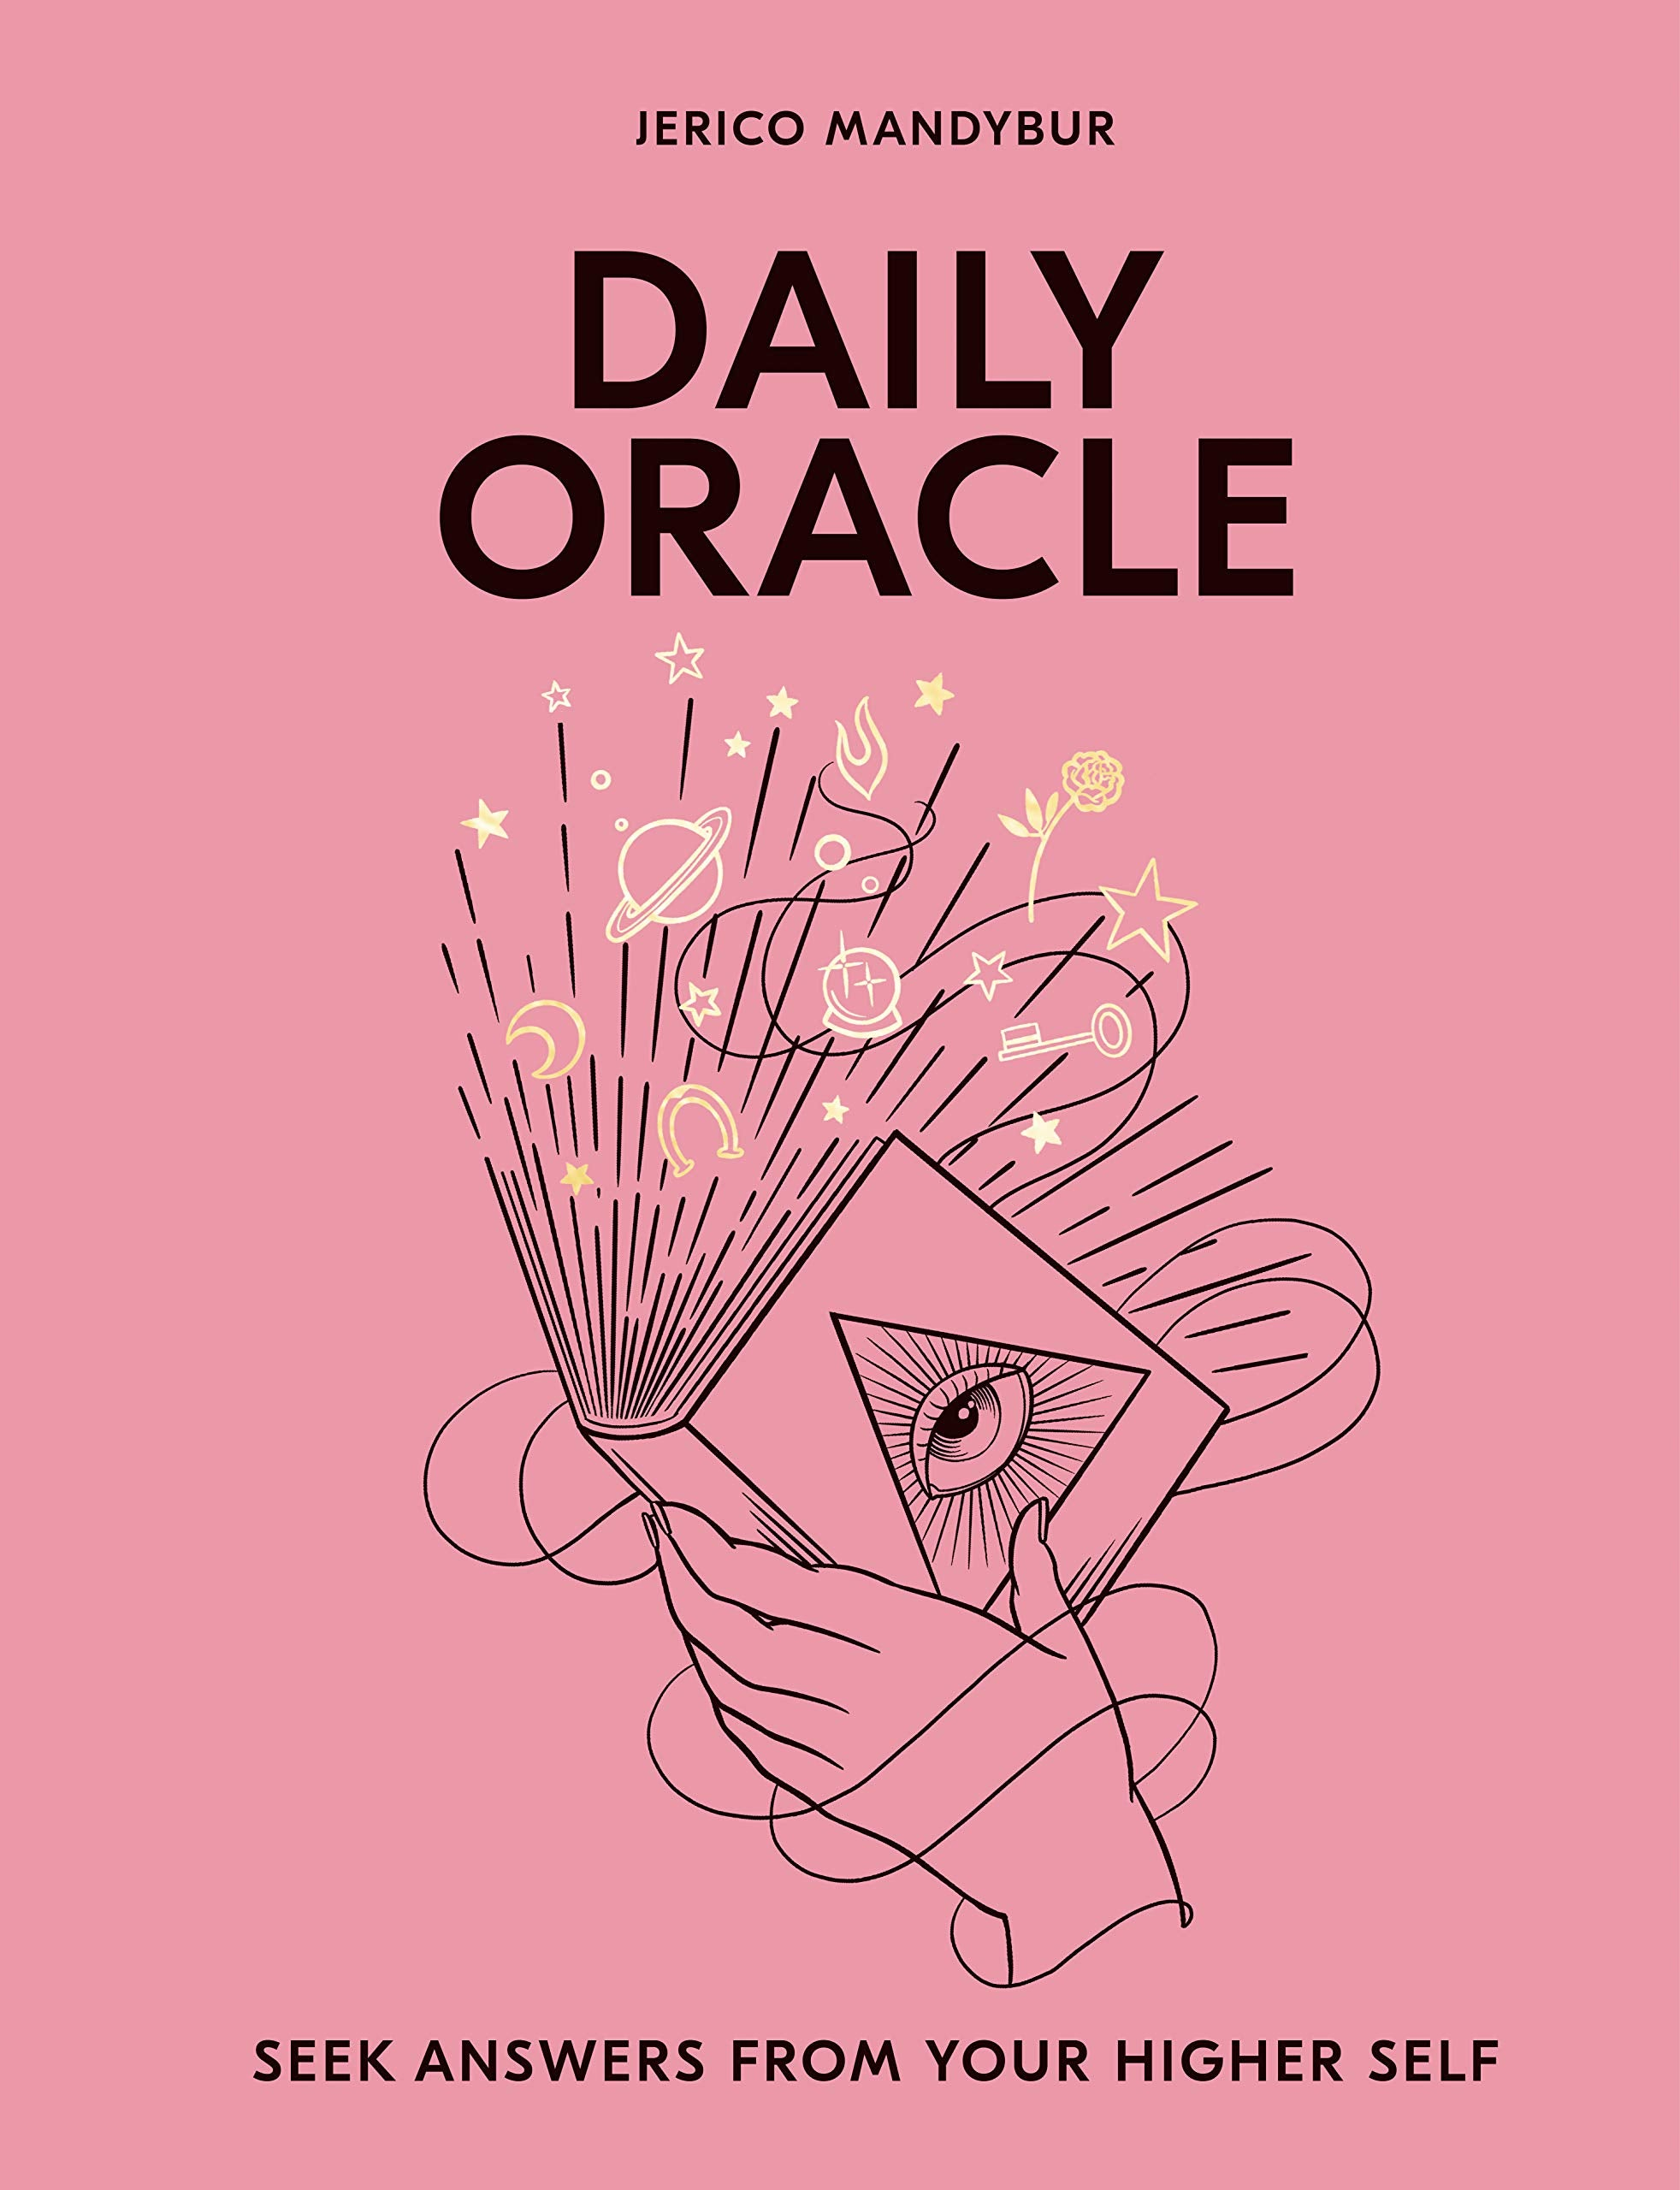 Daily Oracle